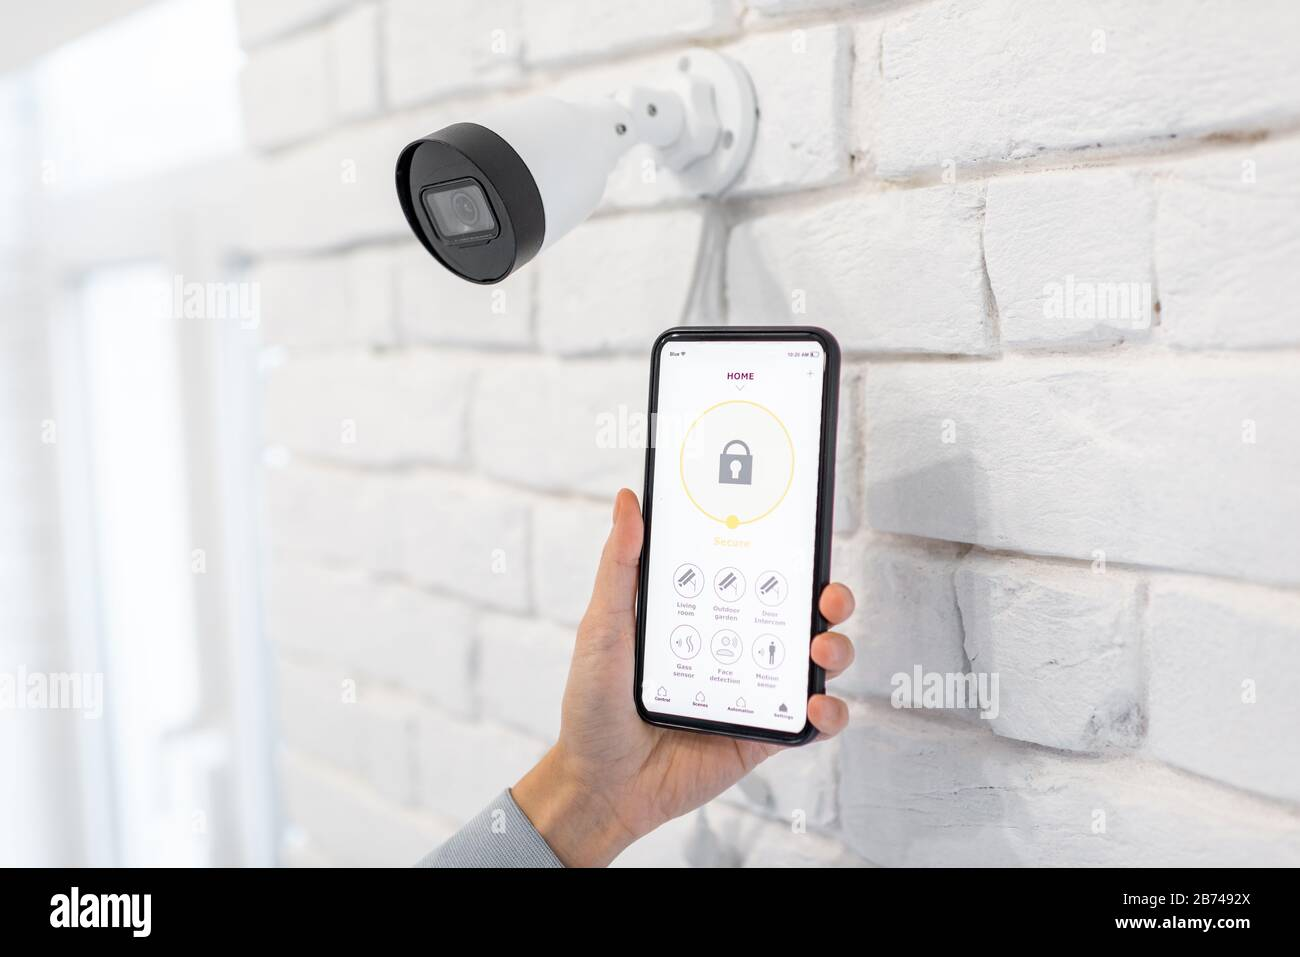 Controlling video surveillance and home alarm with mobile application, close-up on a smart phone with launched app. Concept of a wireless home security systems Stock Photo